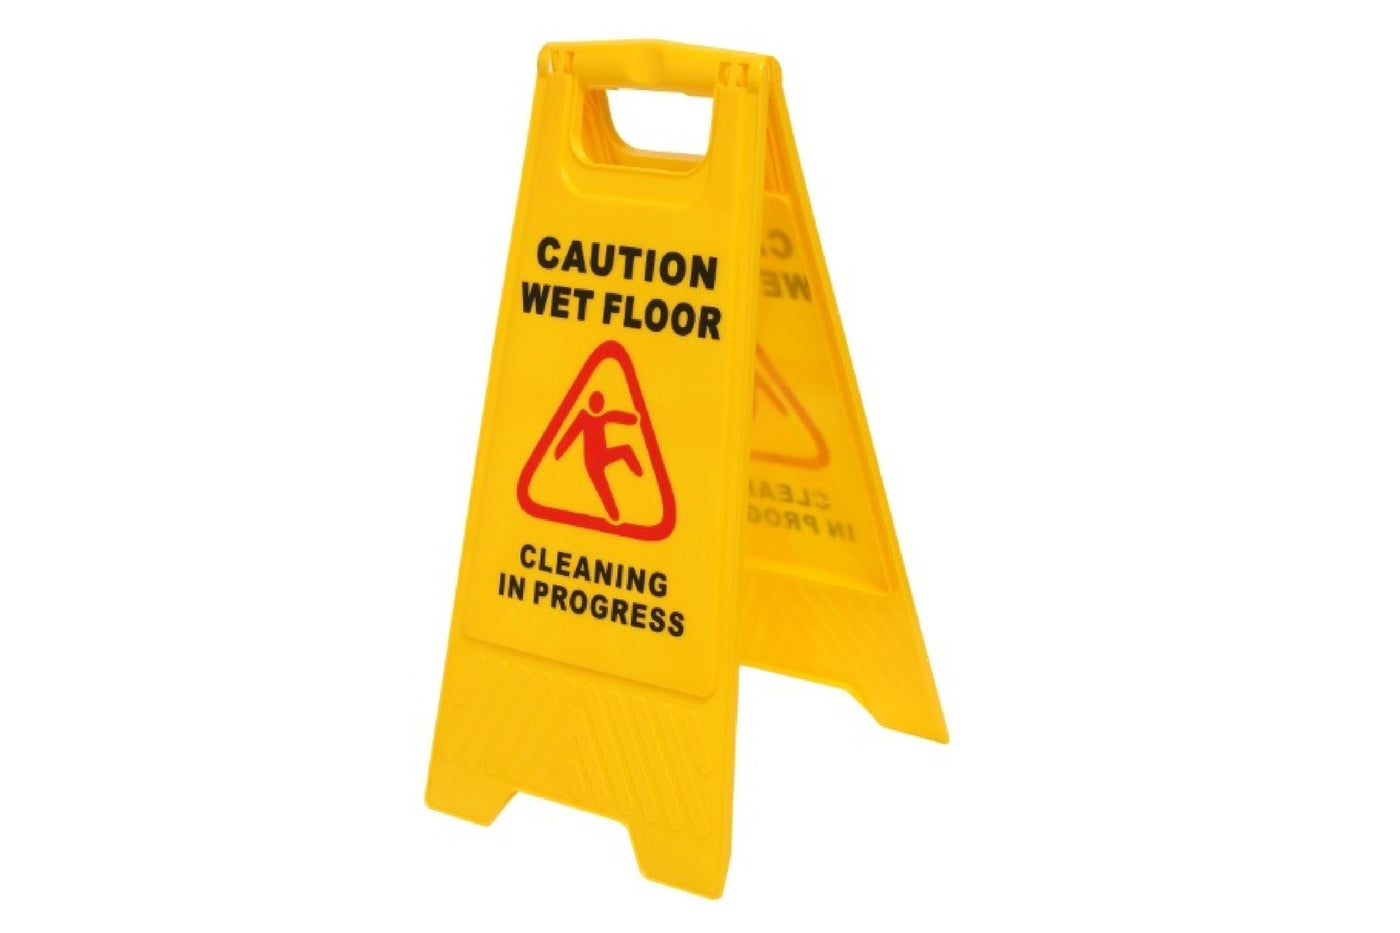 floor cal sided mil wet wooden sign